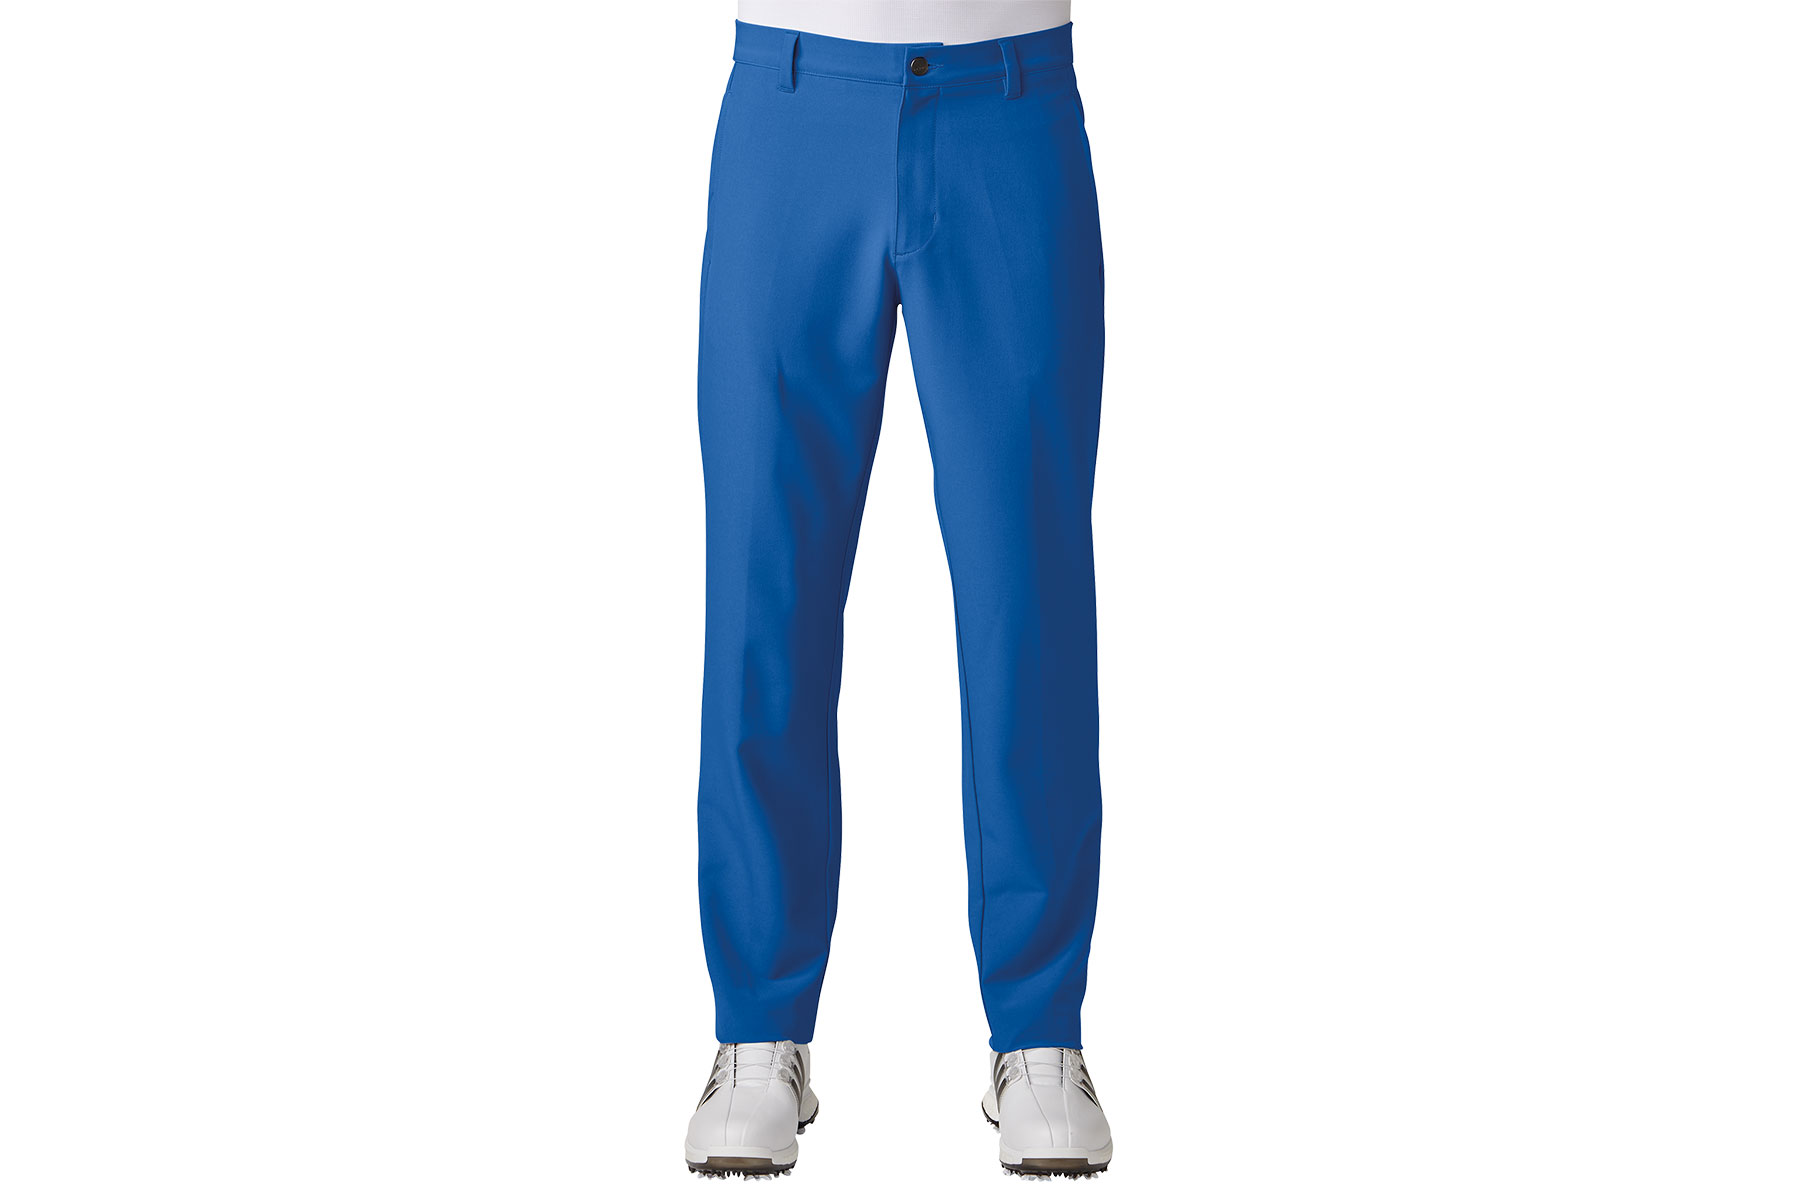 Discount adidas Golf Shoes For Sale at Snainton Golf Direct Adidas junior fashion textured golf trousers